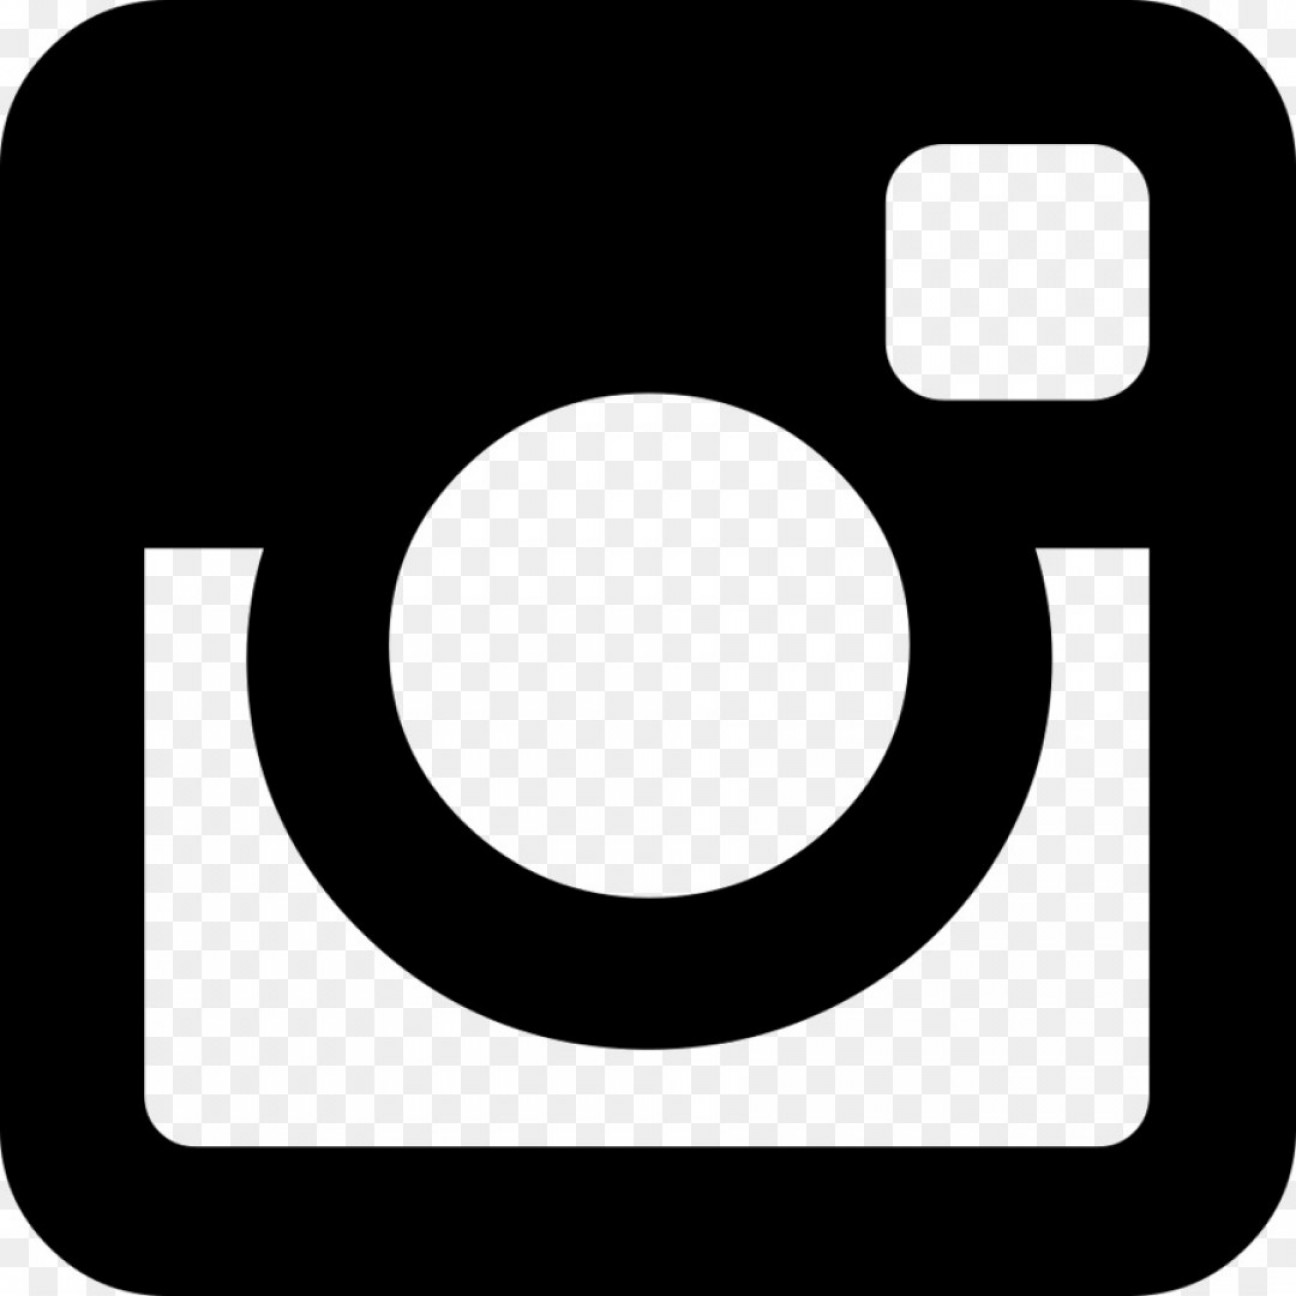 1296x1296 Twitter Icon Black And White Vector